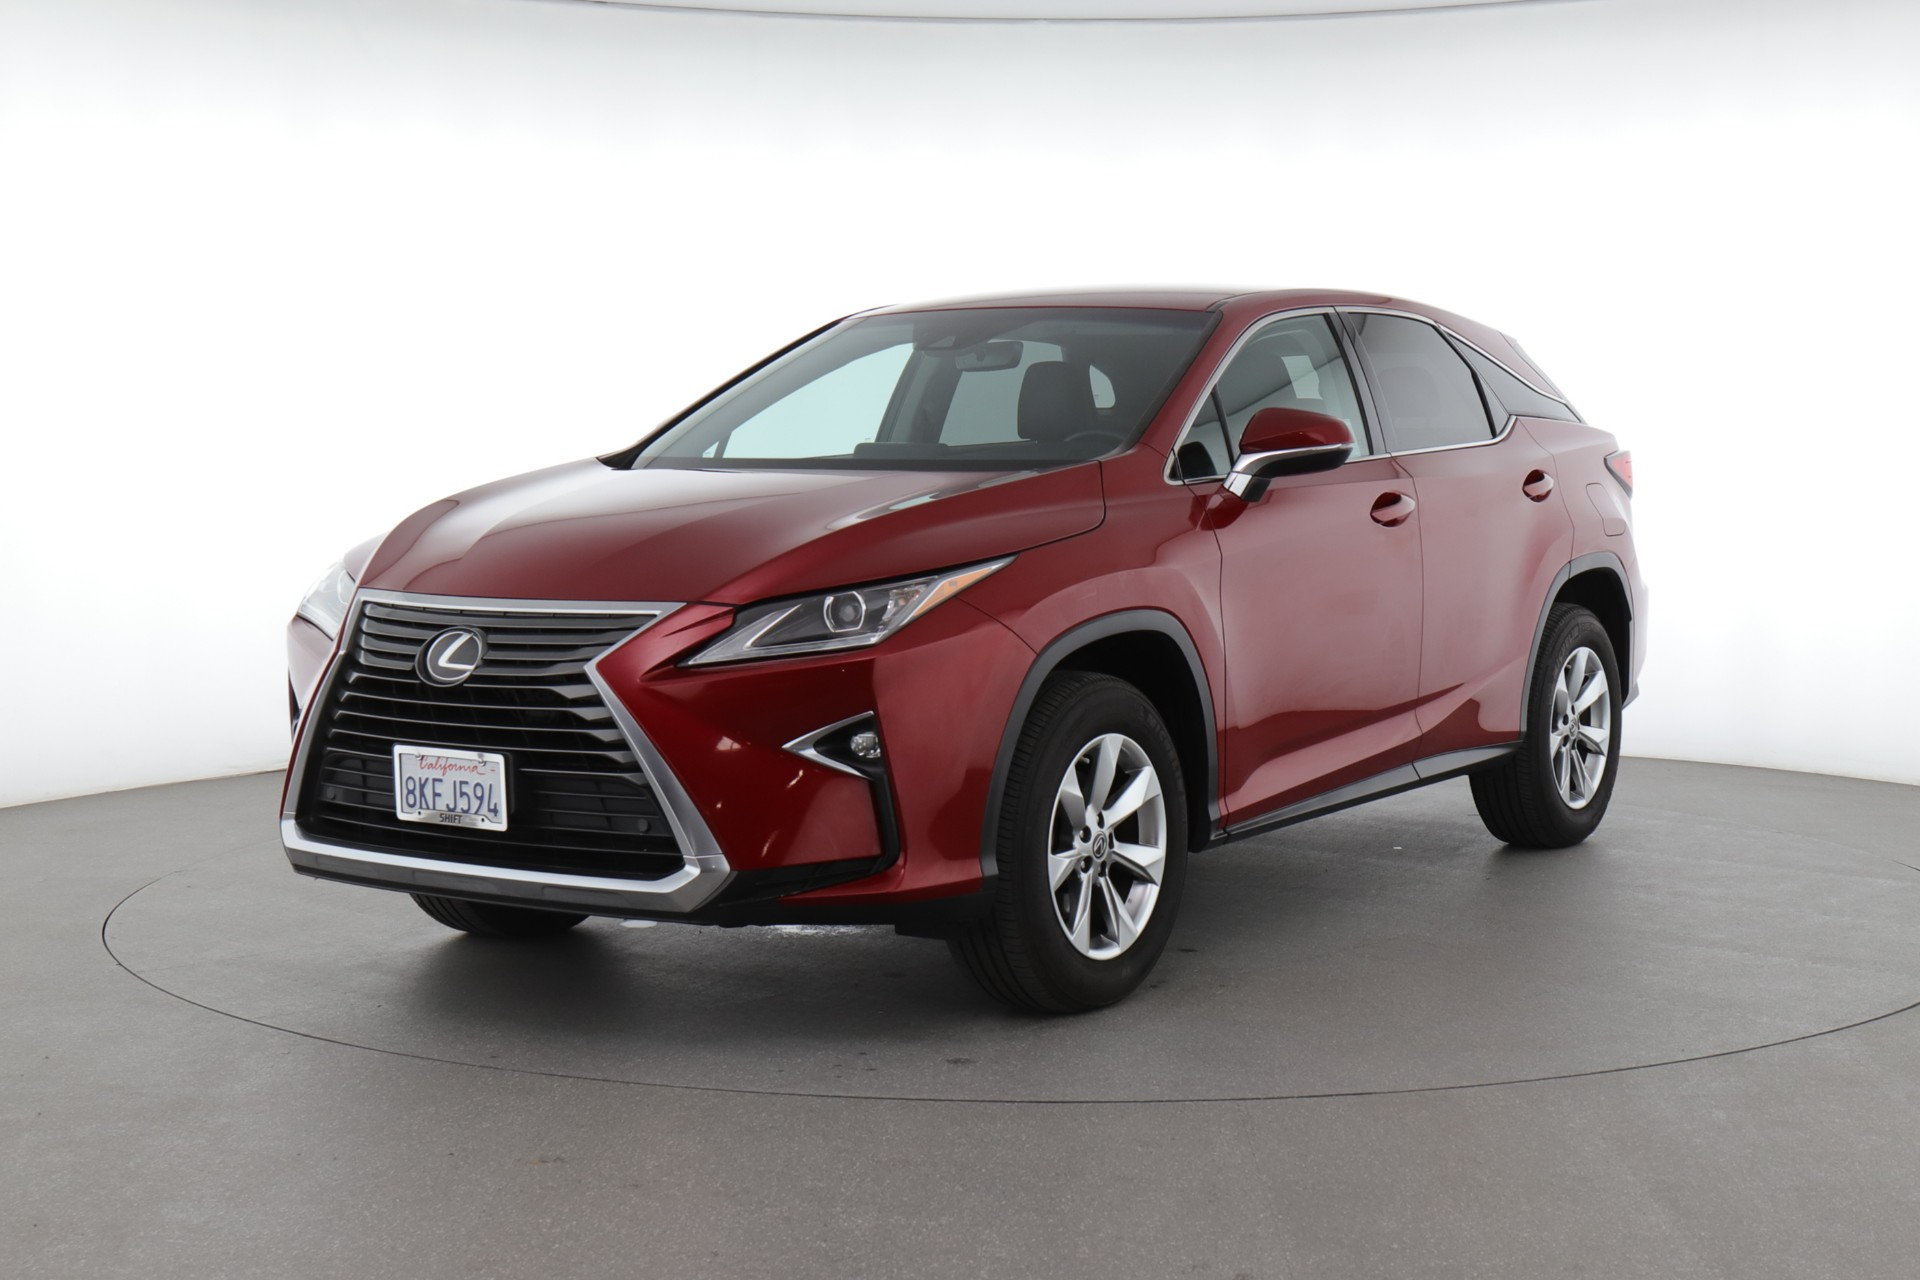 How Much is a Lexus? Models, Price & Reviews